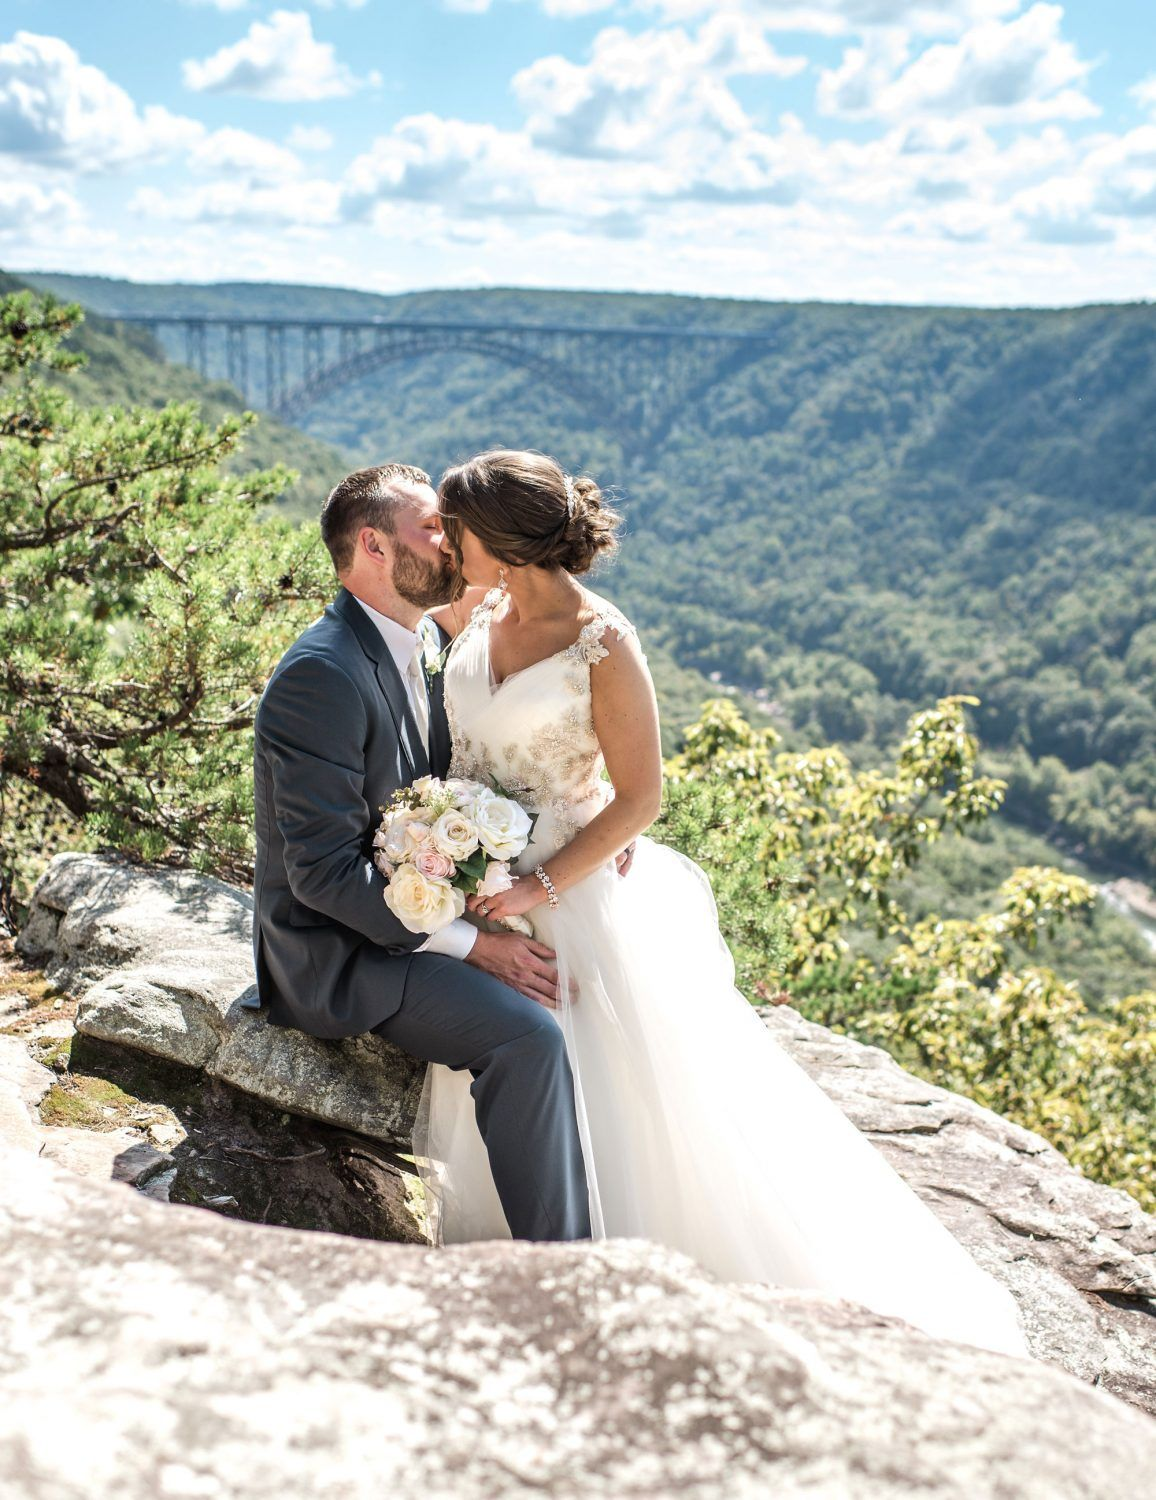 A Wedding Adventure on the New River Gorge | Mountain top ...